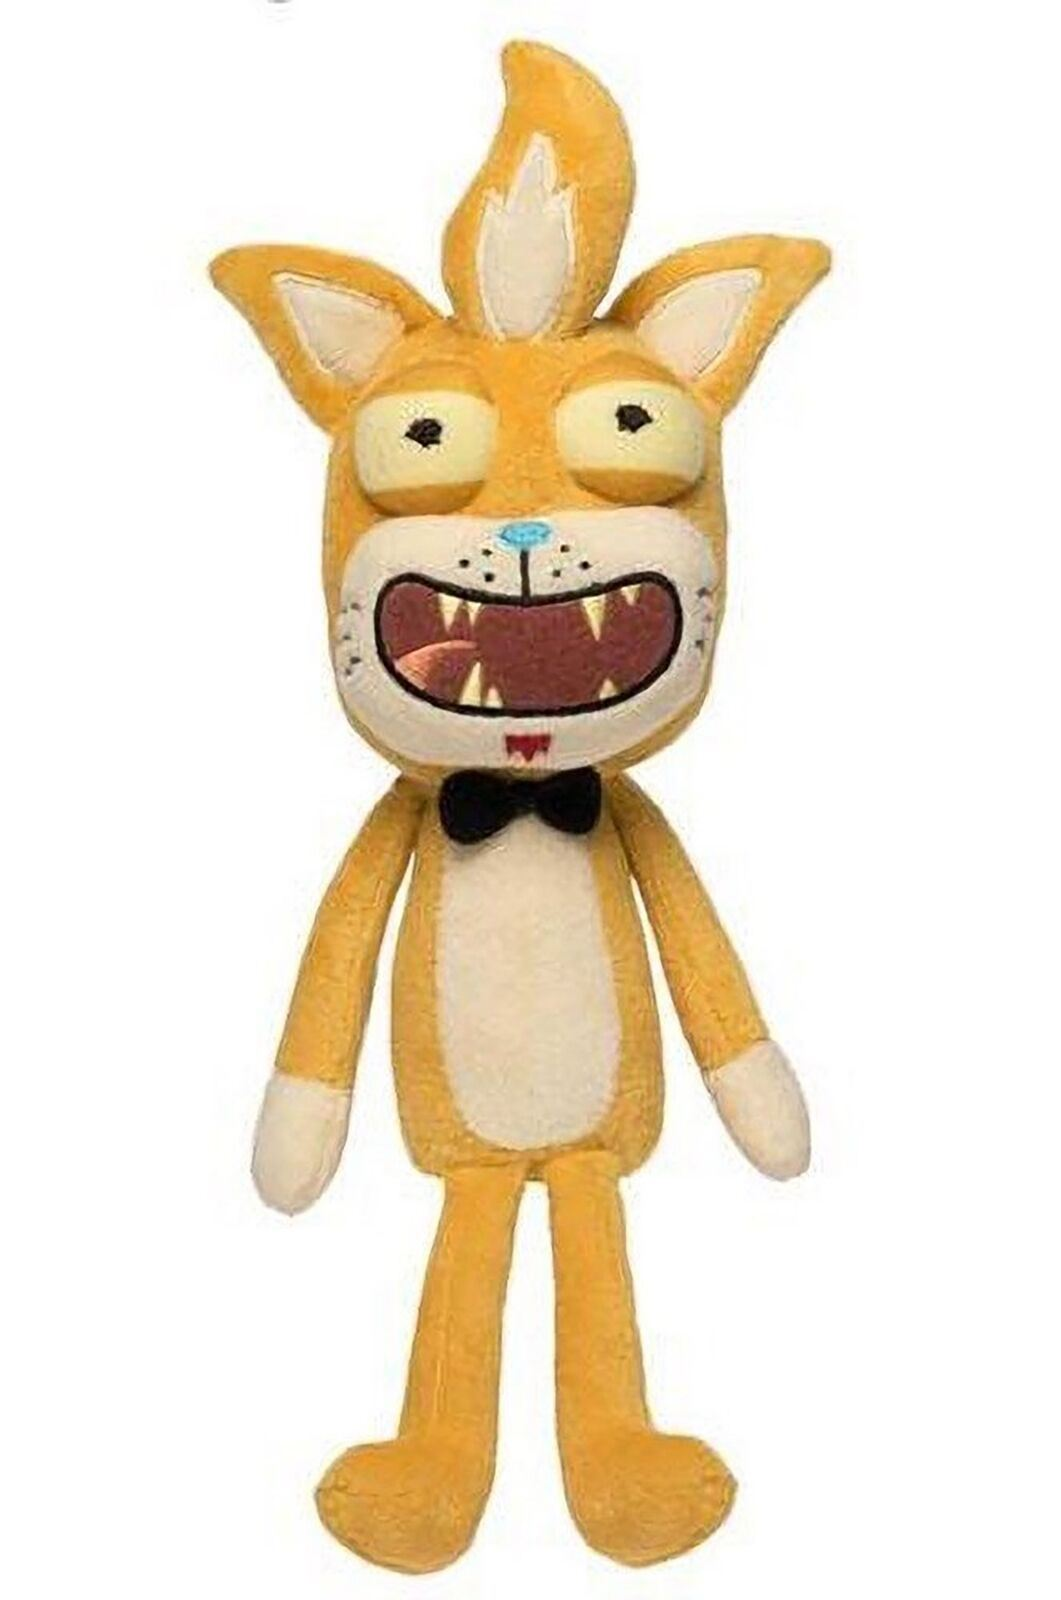 Uni-toys peluche chat 28 cm grand article neuf